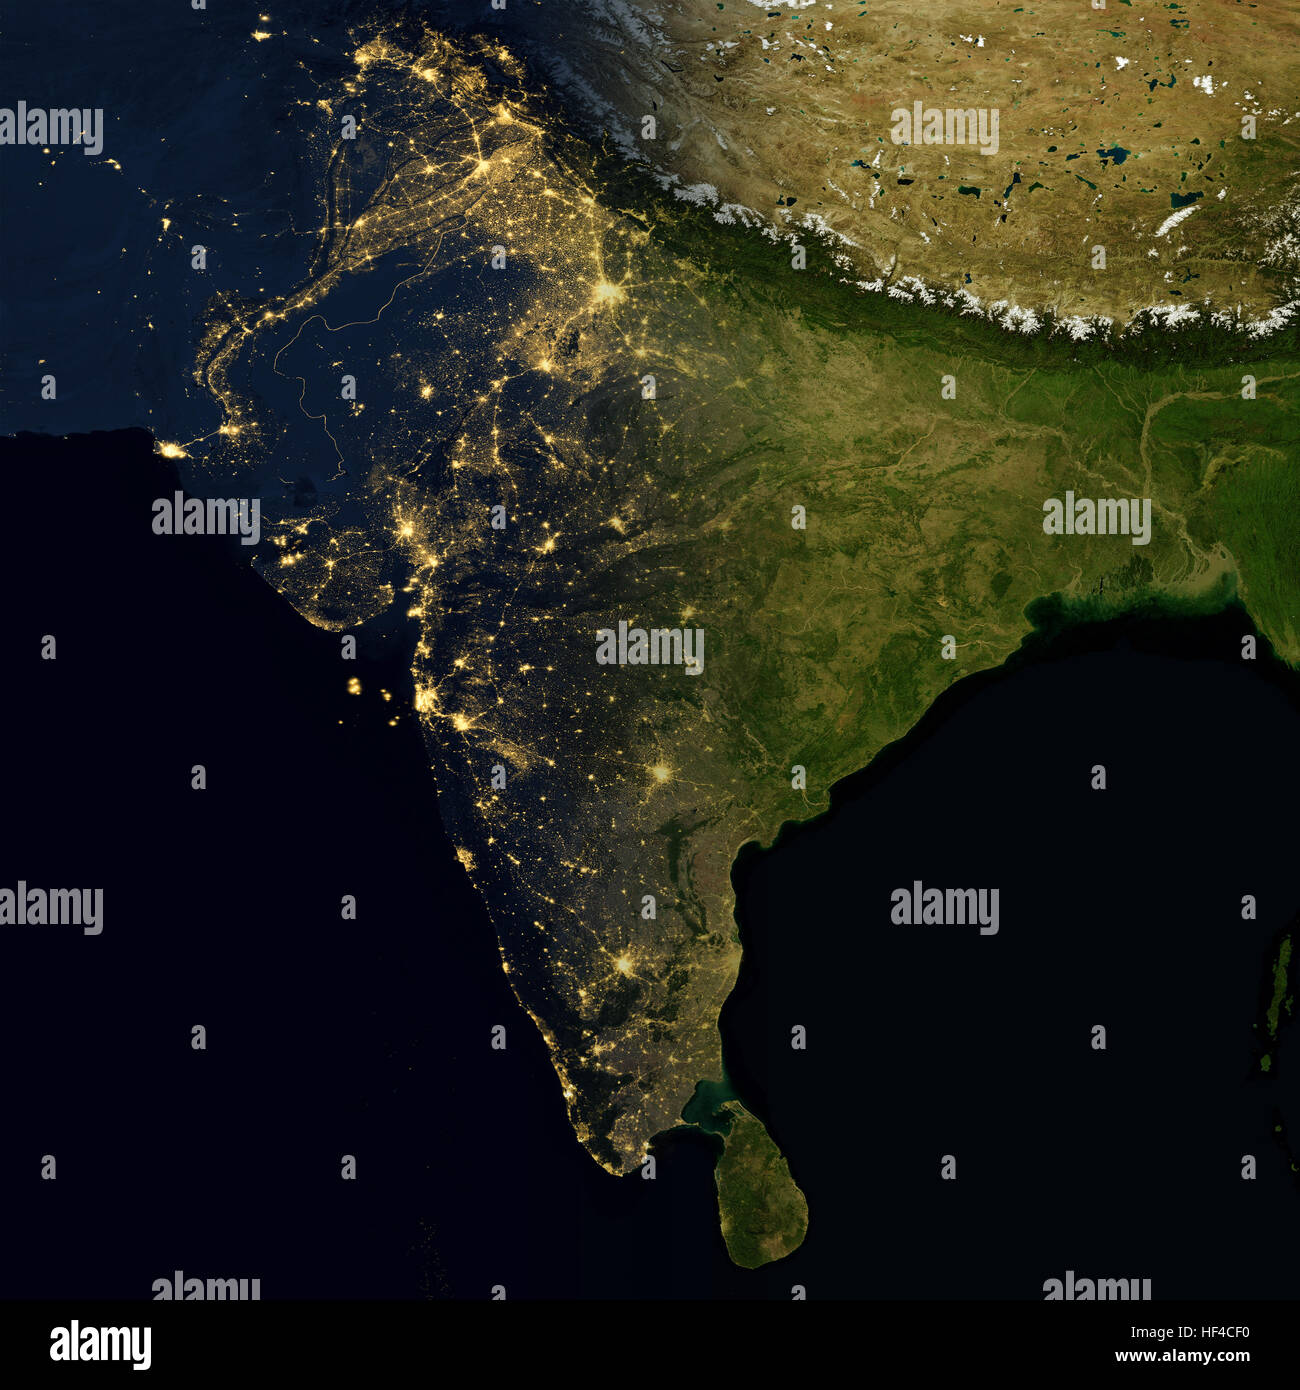 City lights on world map India Stock Photo Royalty Free Image